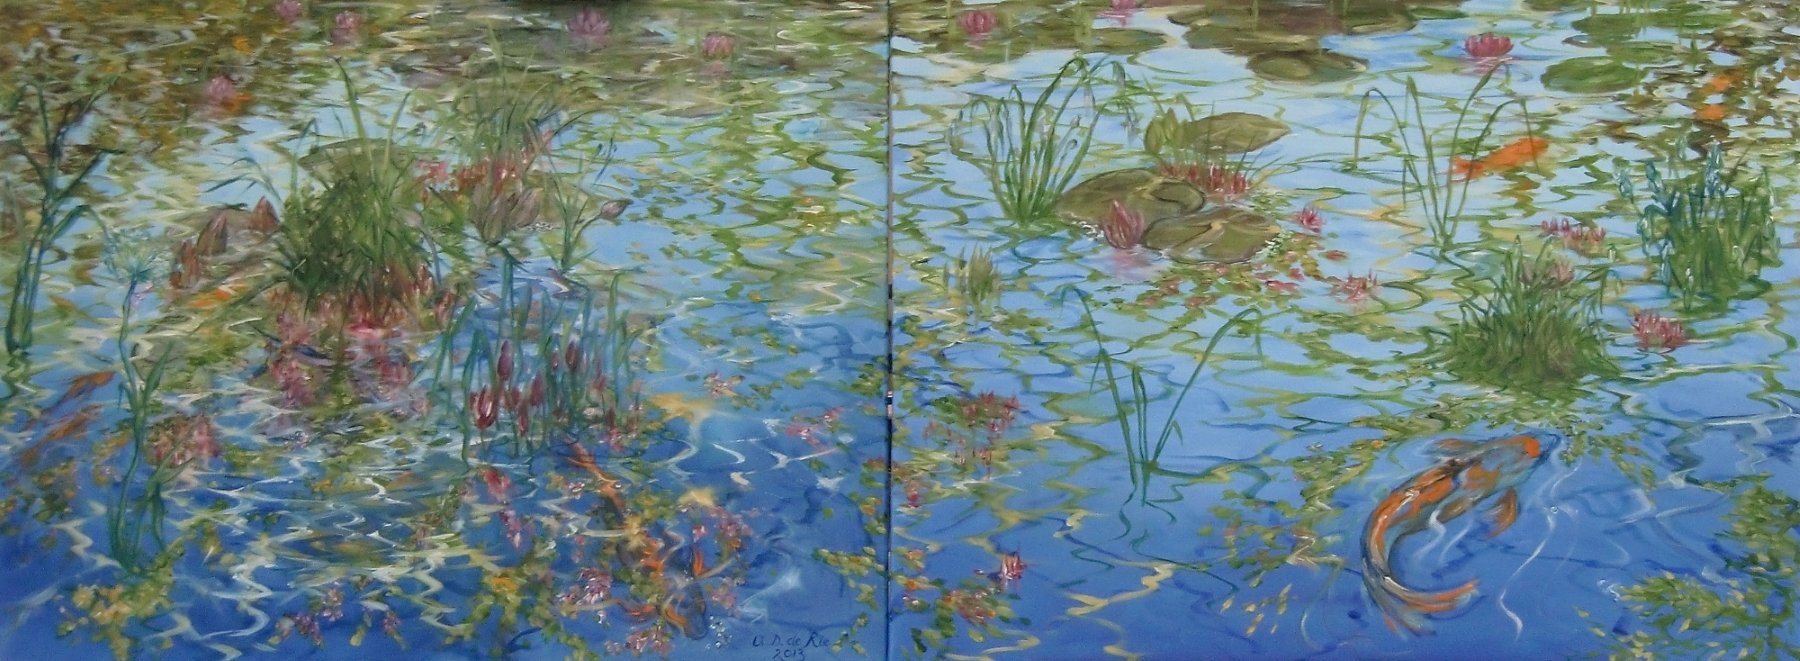 Summer At The Pond, oil on canvas, 60 cm x 160 cm (tezamen), 2013